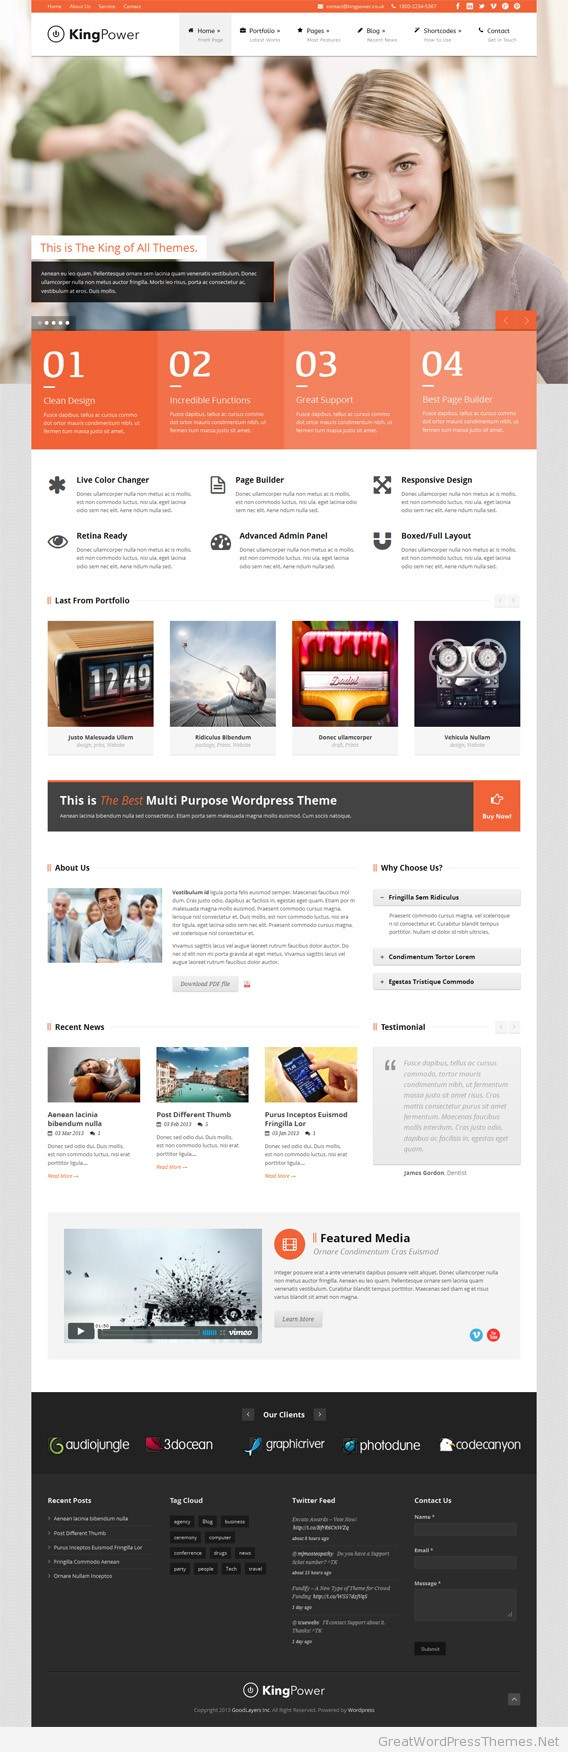 king-power-wordpress-theme